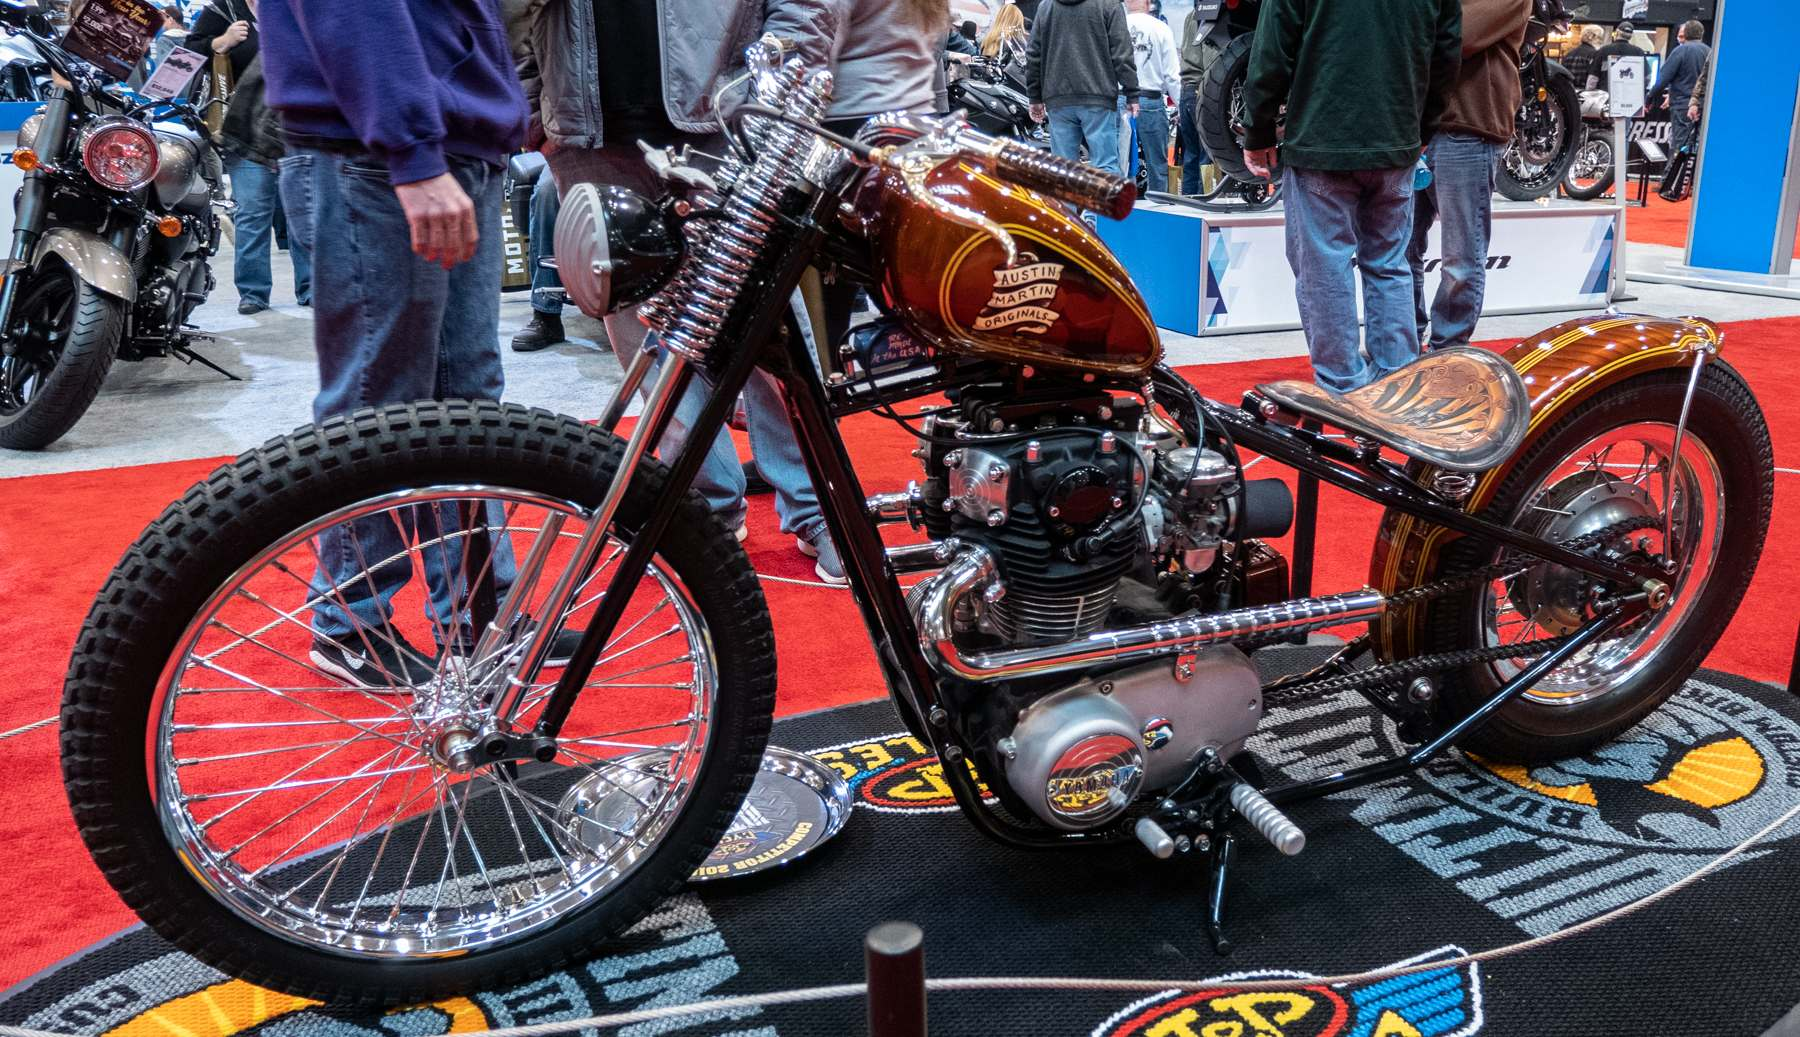 cleveland motorcycle show International Motorcycle Shows 2019 in Cleveland